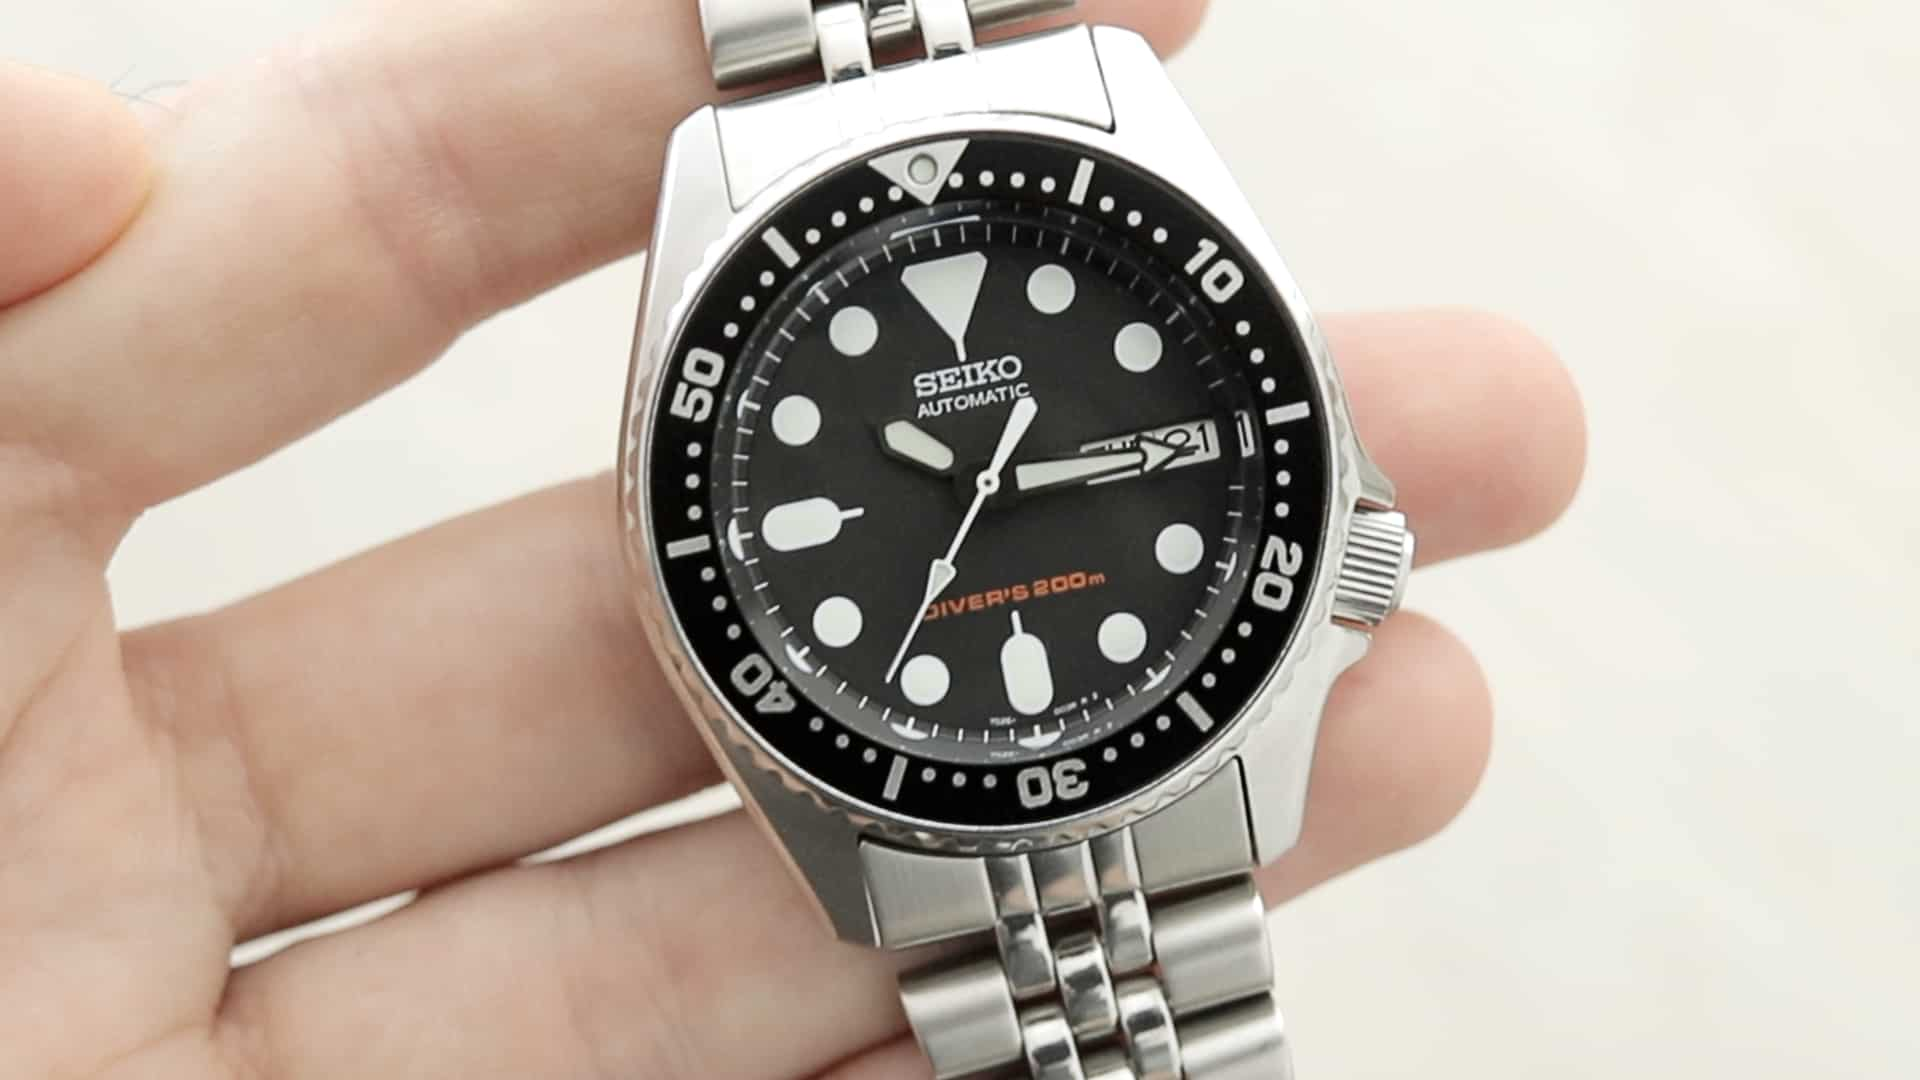 Seiko Skx013 Review The Best Dive Watch For Small Wrists The Slender Wrist